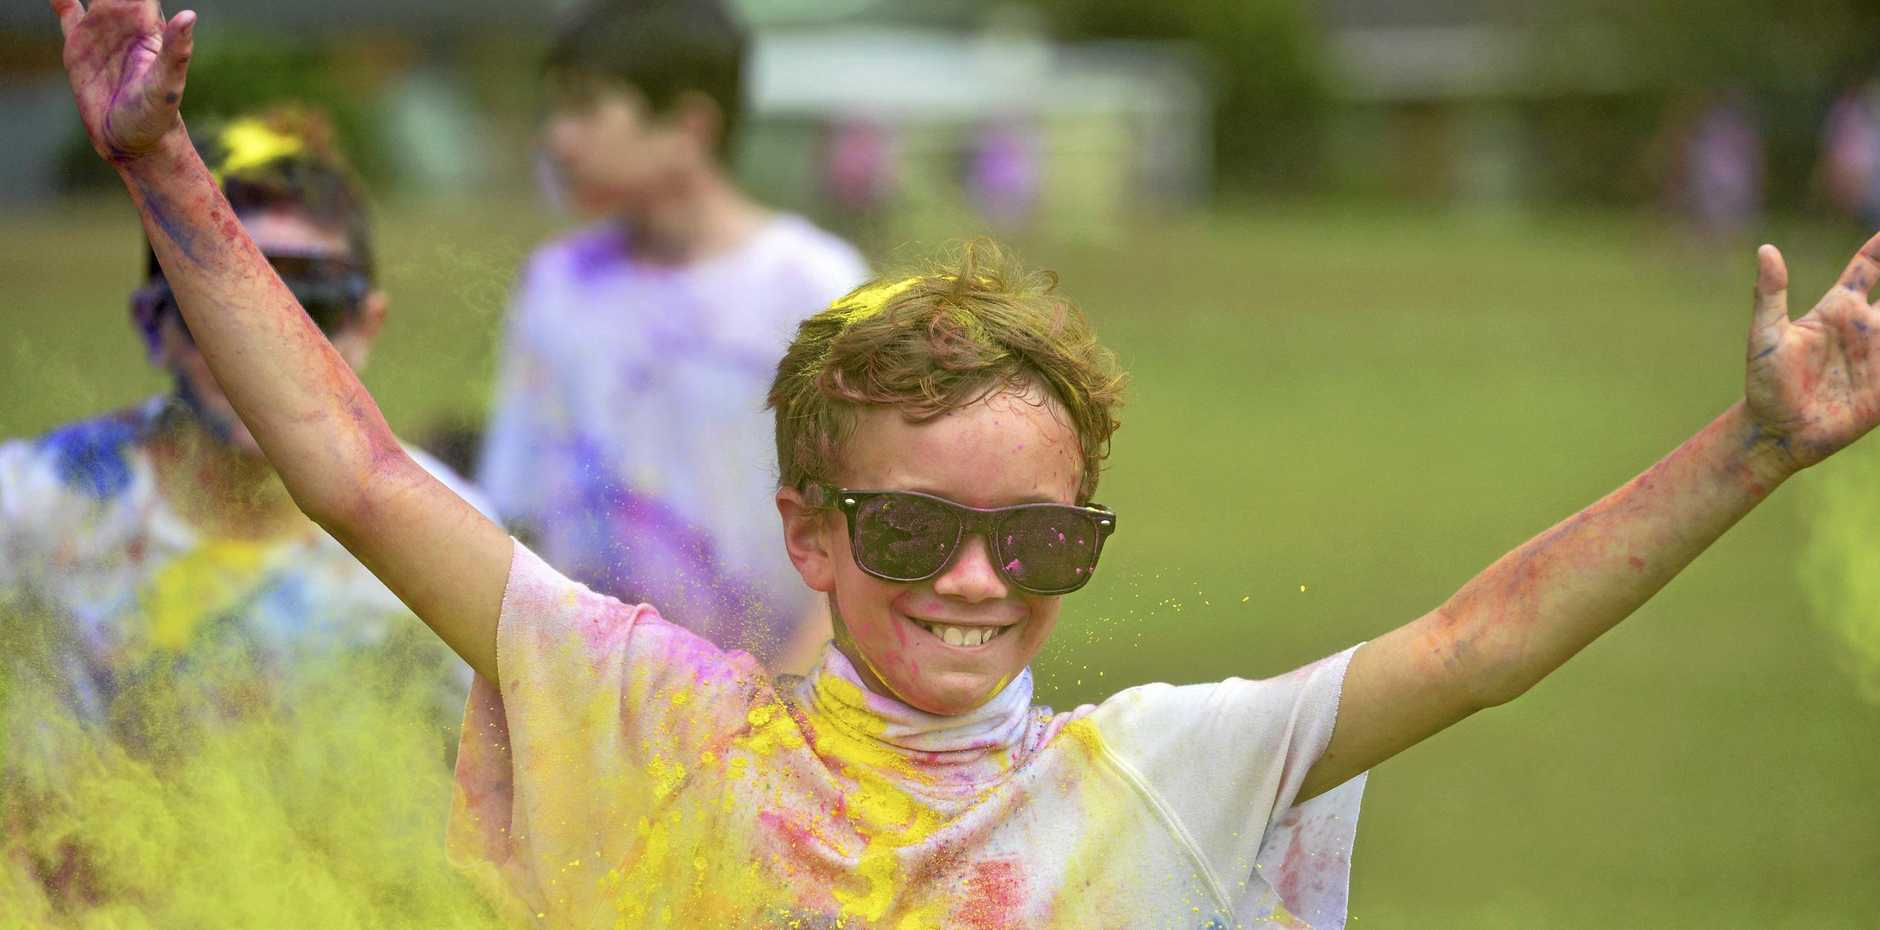 COLOUR FUN: Get messy and have some fun at the Colour Frenzy 5k Colour Run at Newtown Park.